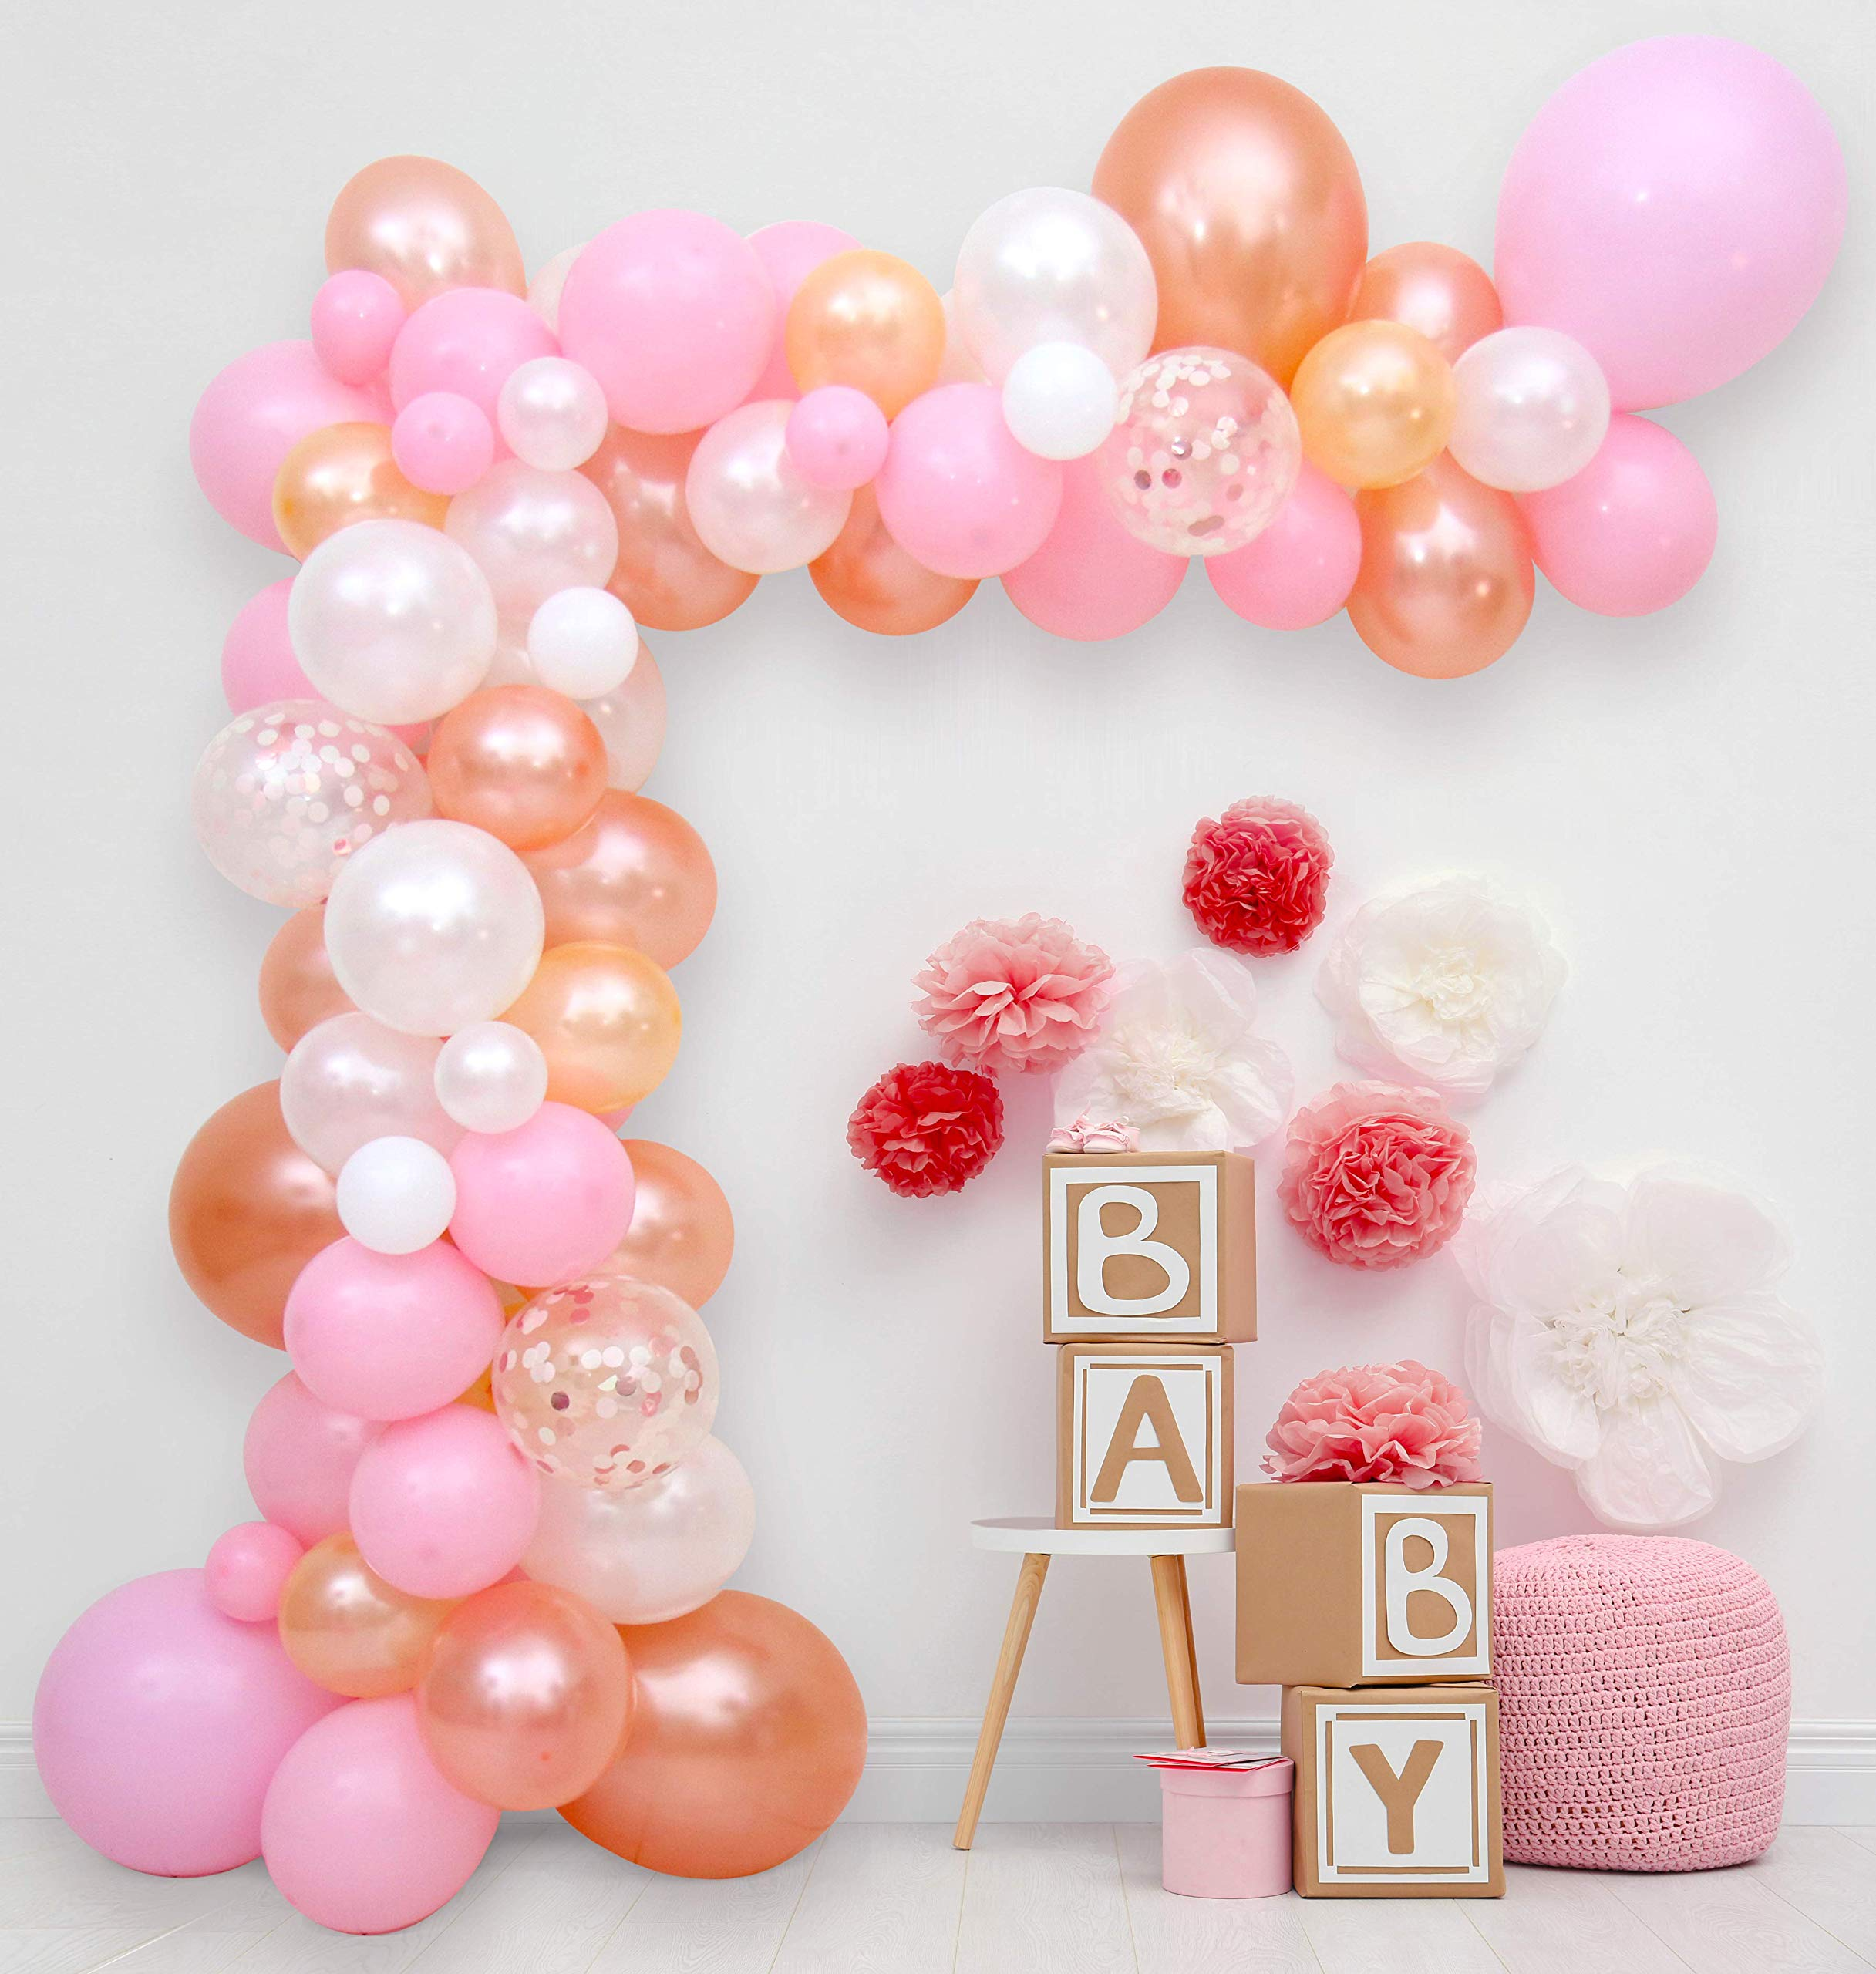 Balloon Arch & Garland Kit | 96 Pink Peach Rose Gold Confetti & White Balloons + Extras | 16' Decoration | Wedding, 1st Birthday Party, Baby Shower